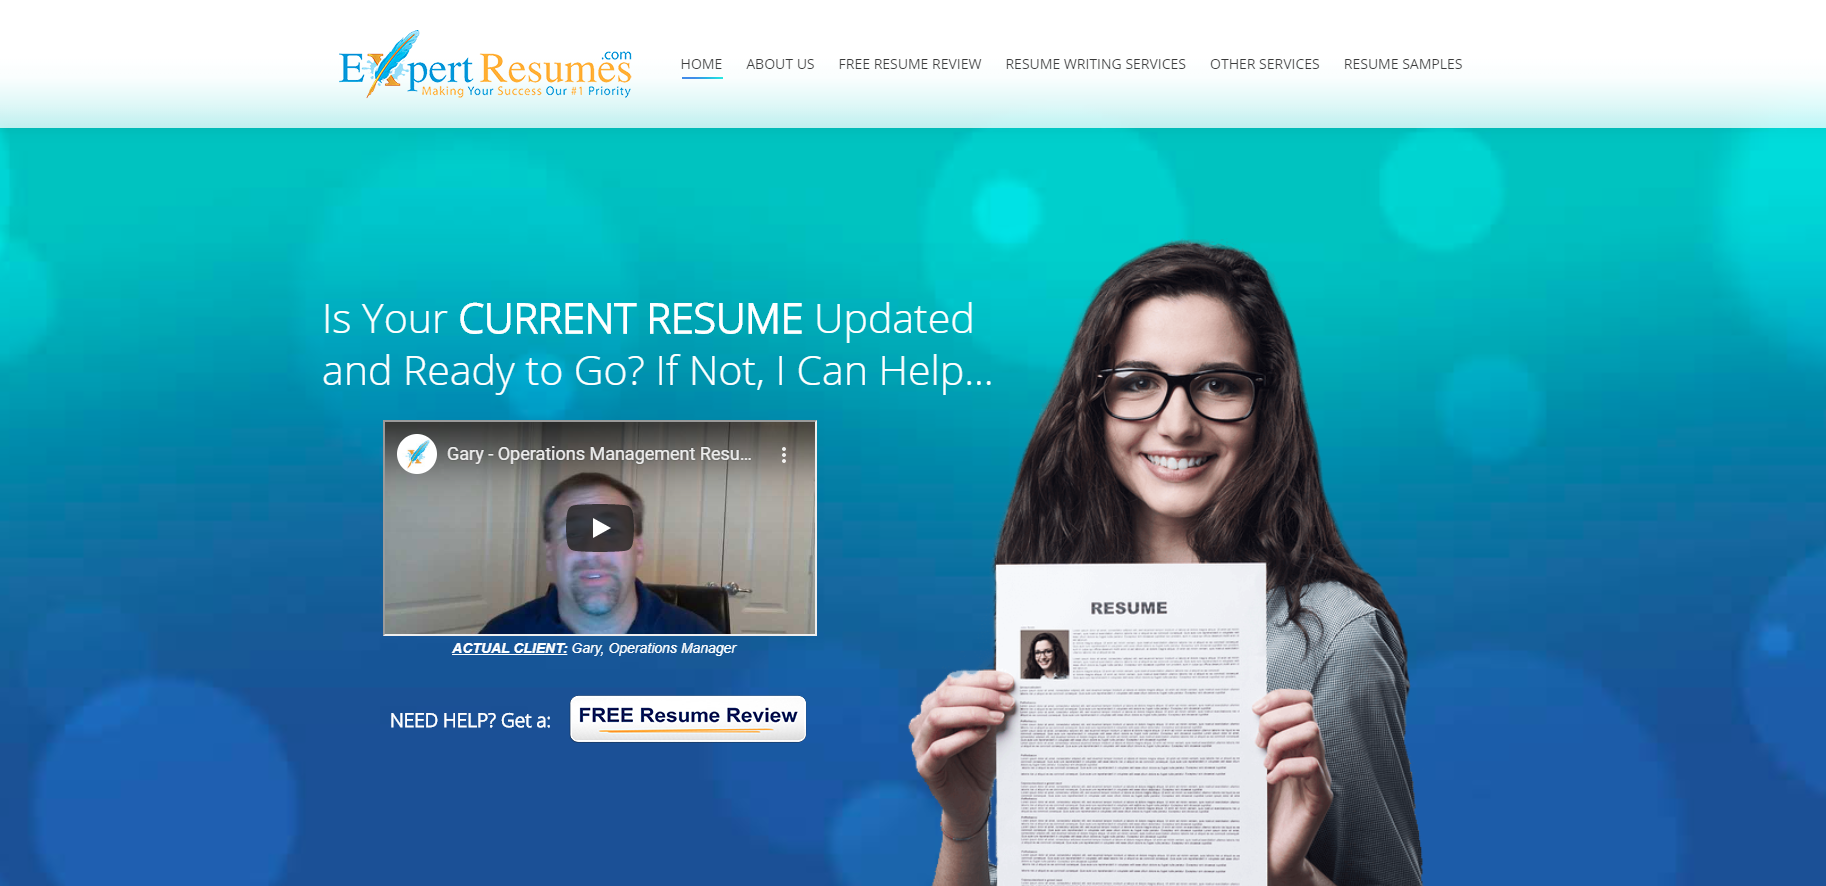 10 Best Military Resume Writing Services in 2020: No. 5 Expert Resumes